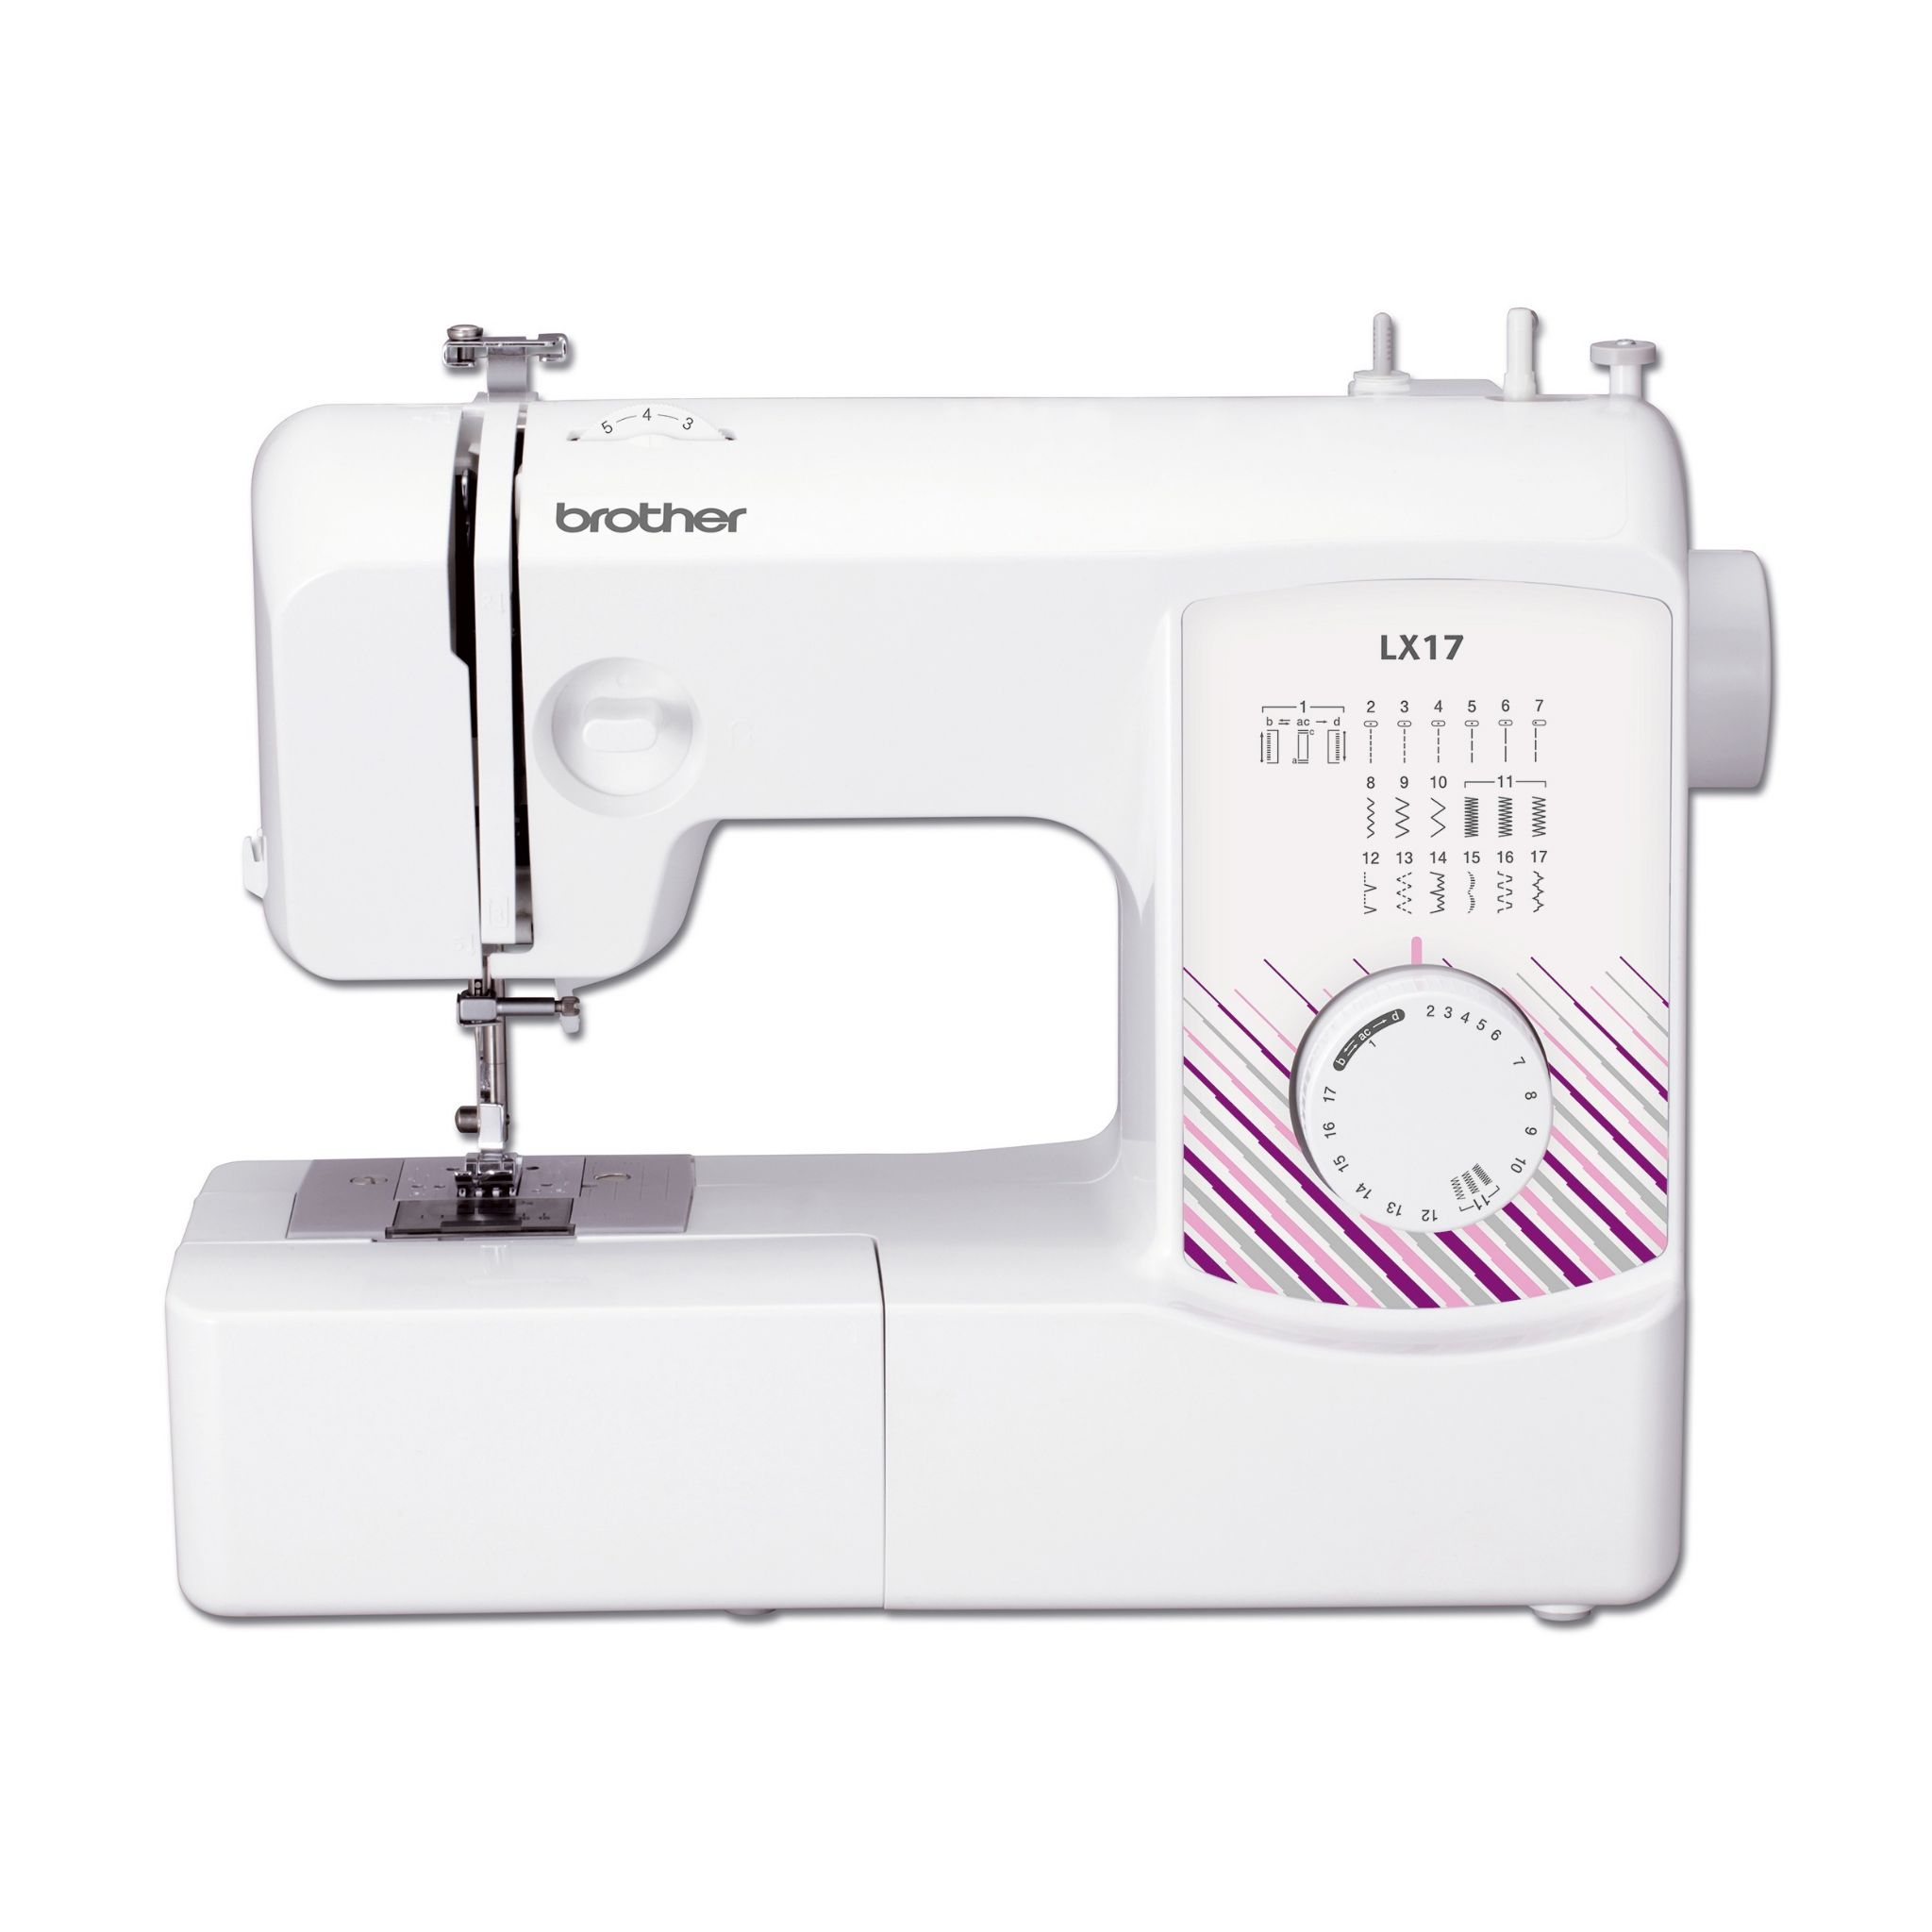 accessories for embroidery machine